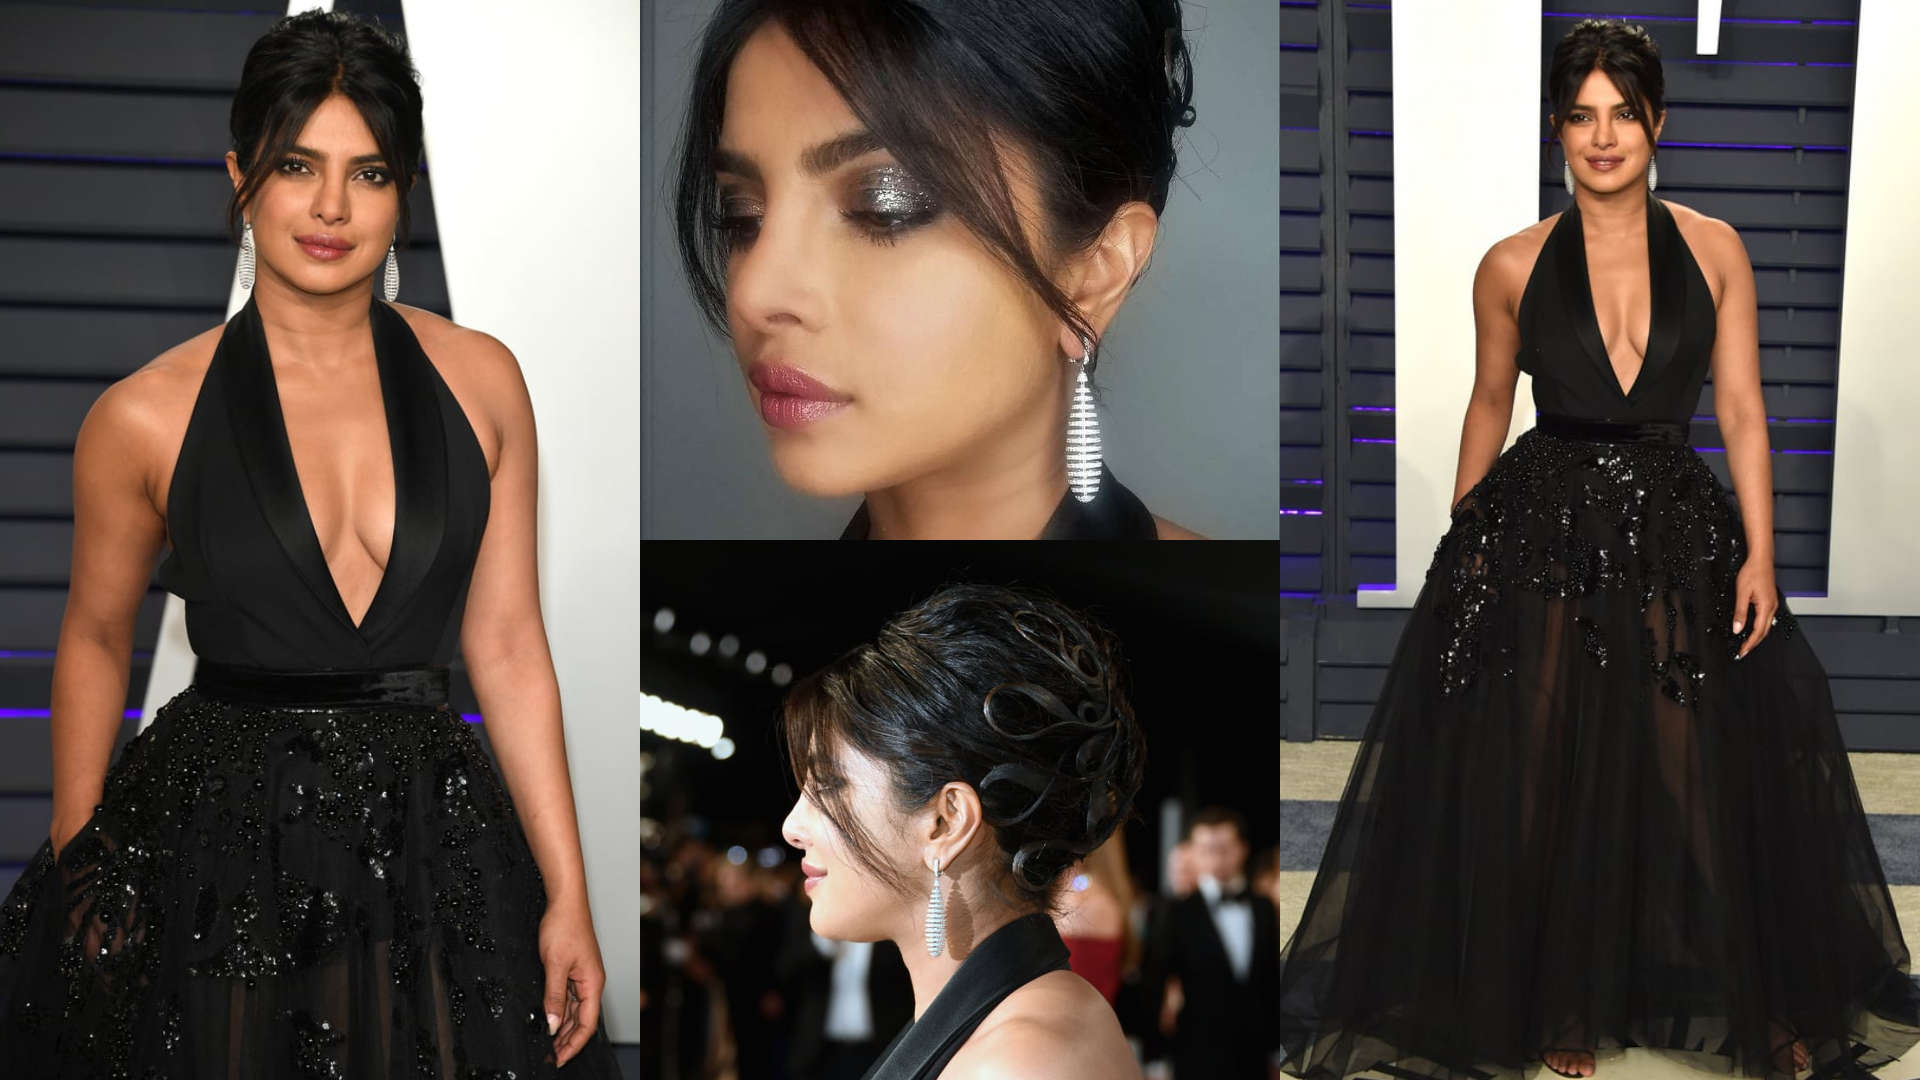 Oscars After Party | Priyanka Chopra Jonas brings on the drama with her Elie Saab gown